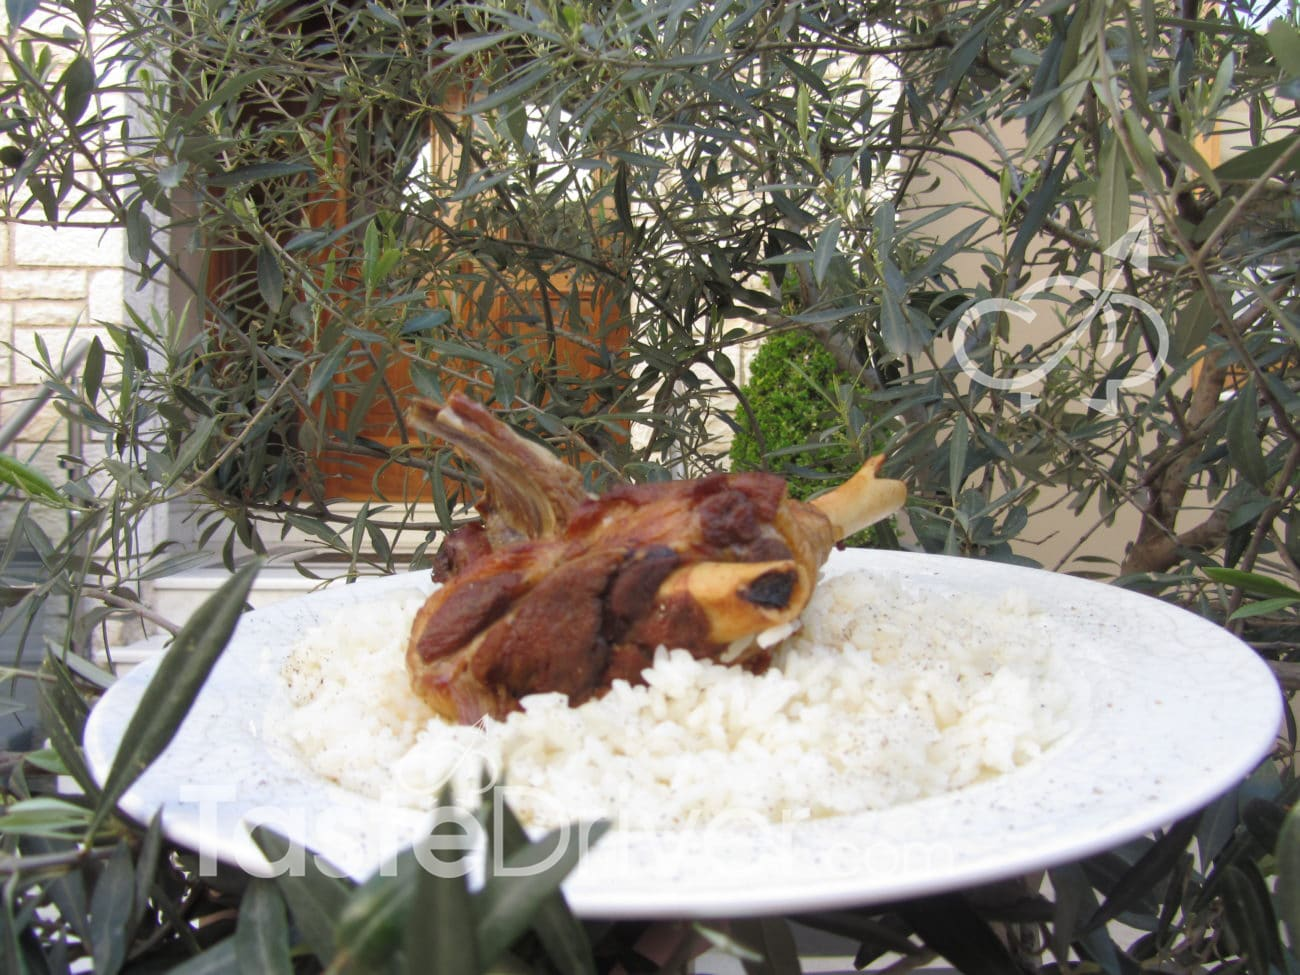 Lamb in a clay casserole with rice